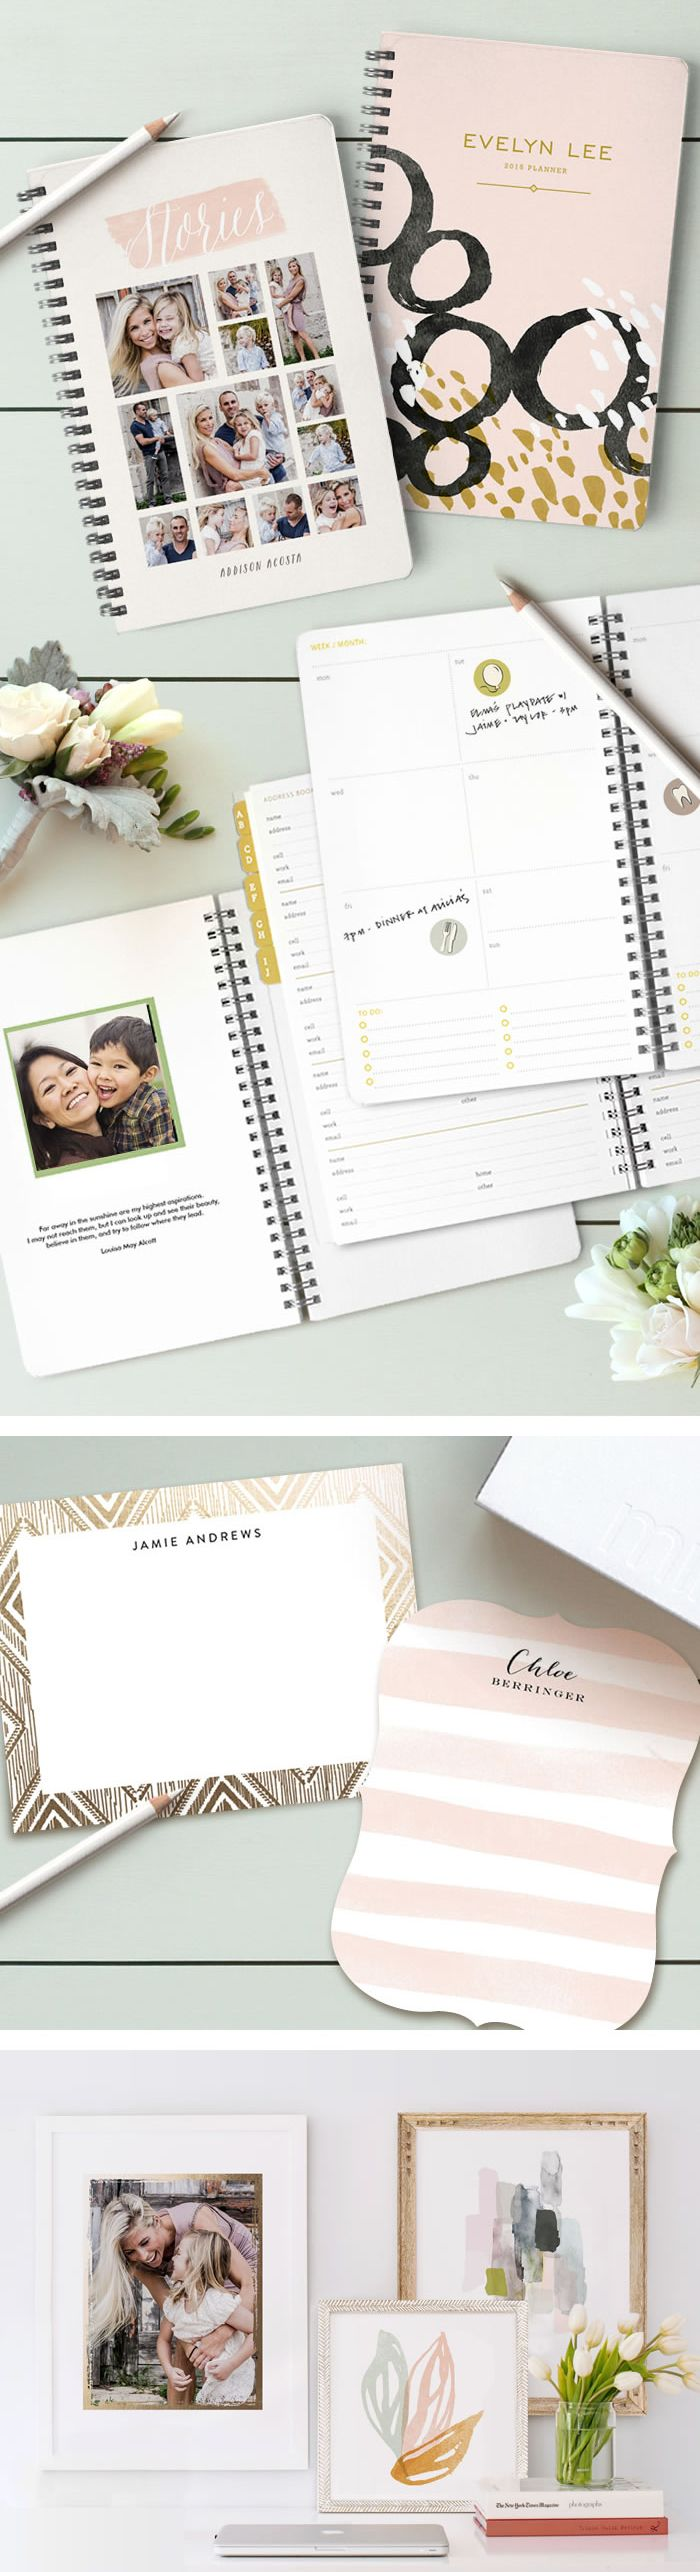 Holiday gifts for Mom from Minted featuring